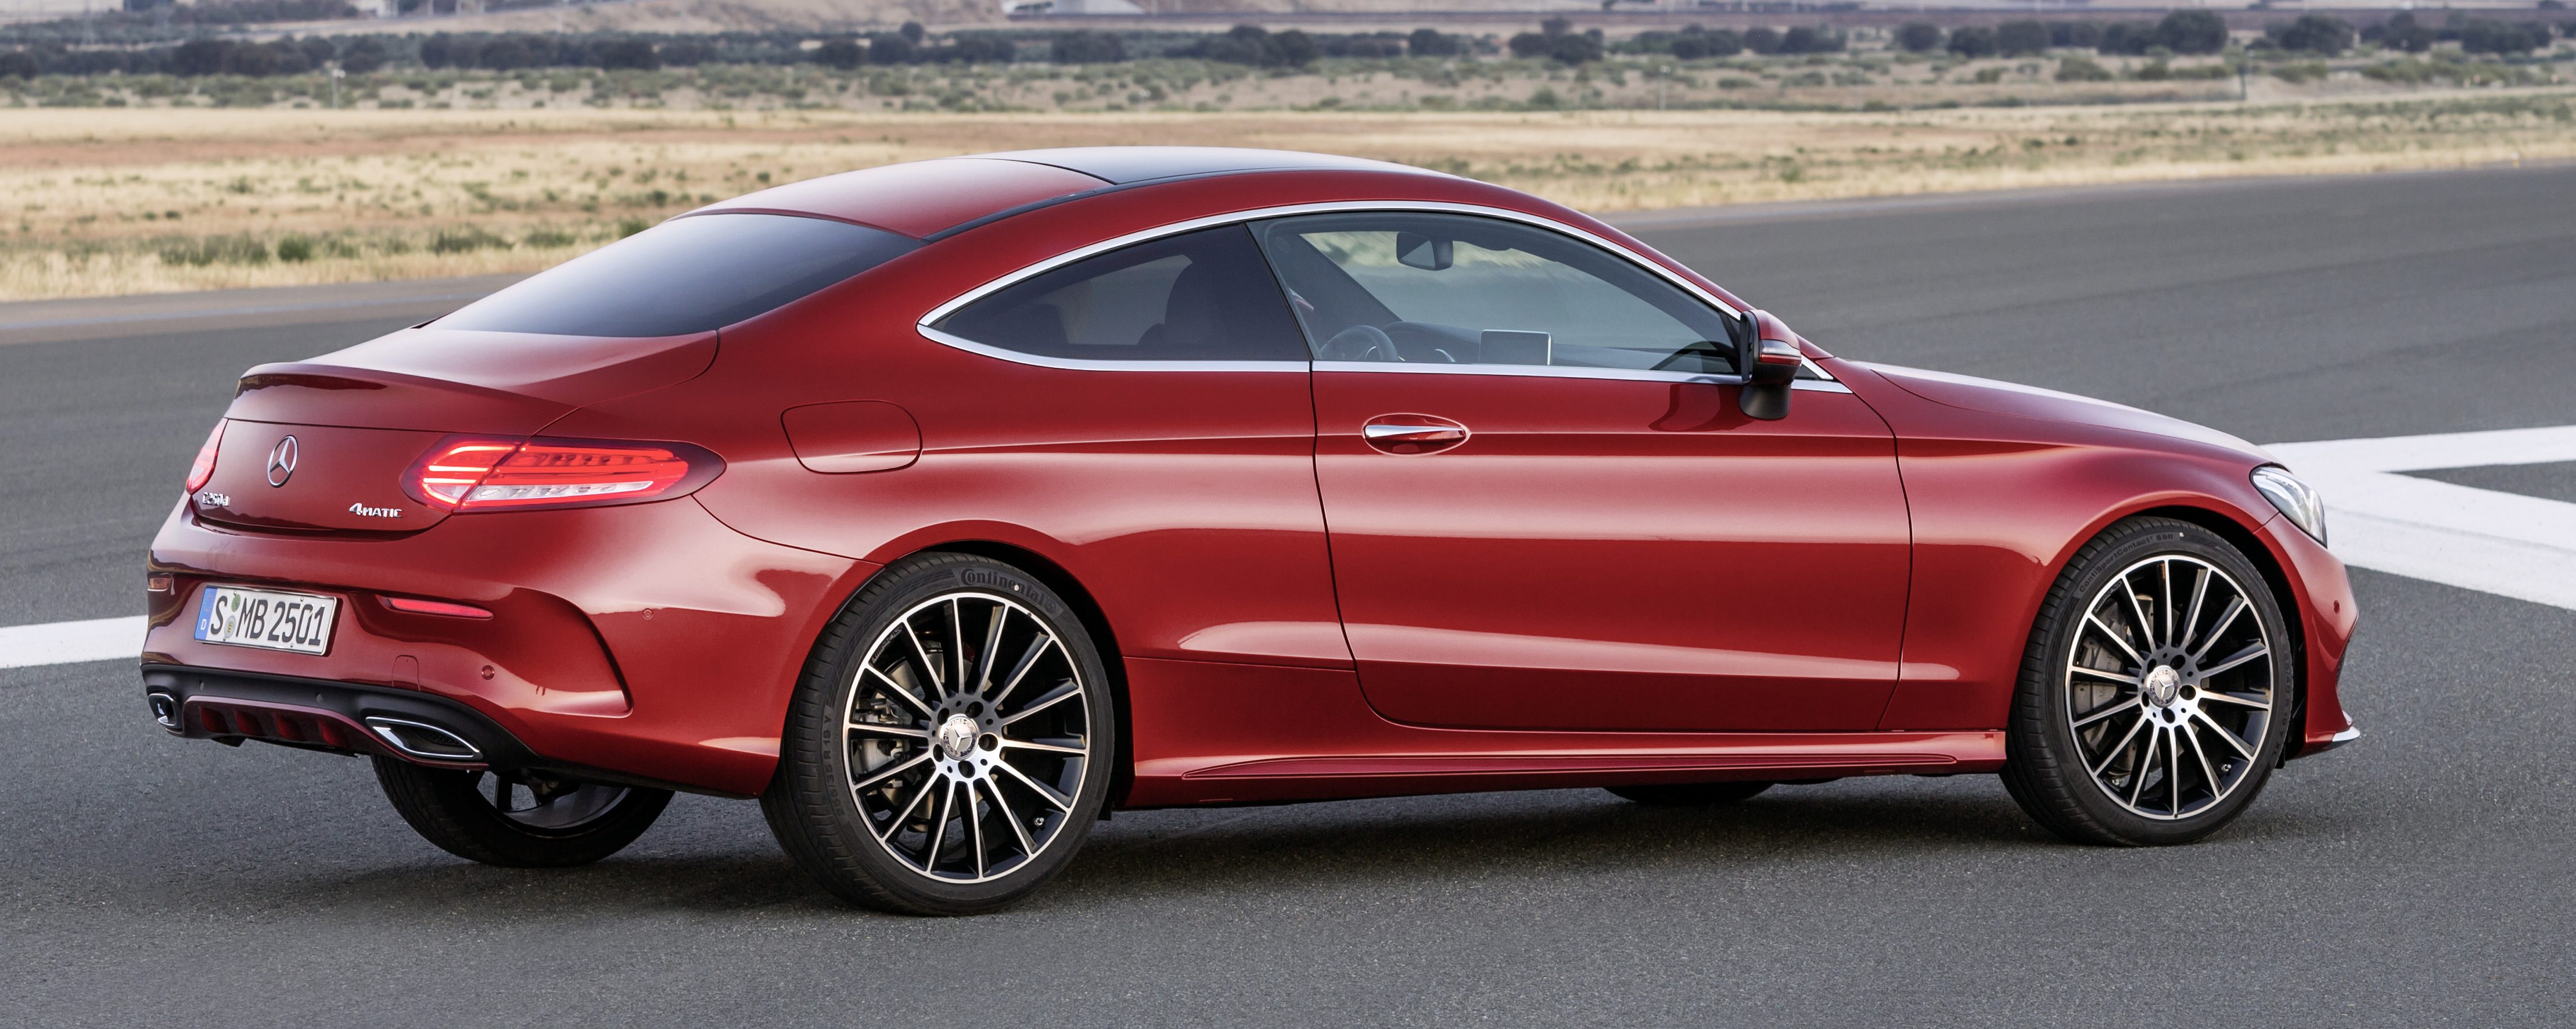 2016 mercedes benz c class coupe finally revealed image 367393 for Mercedes benz c class coupe 2016